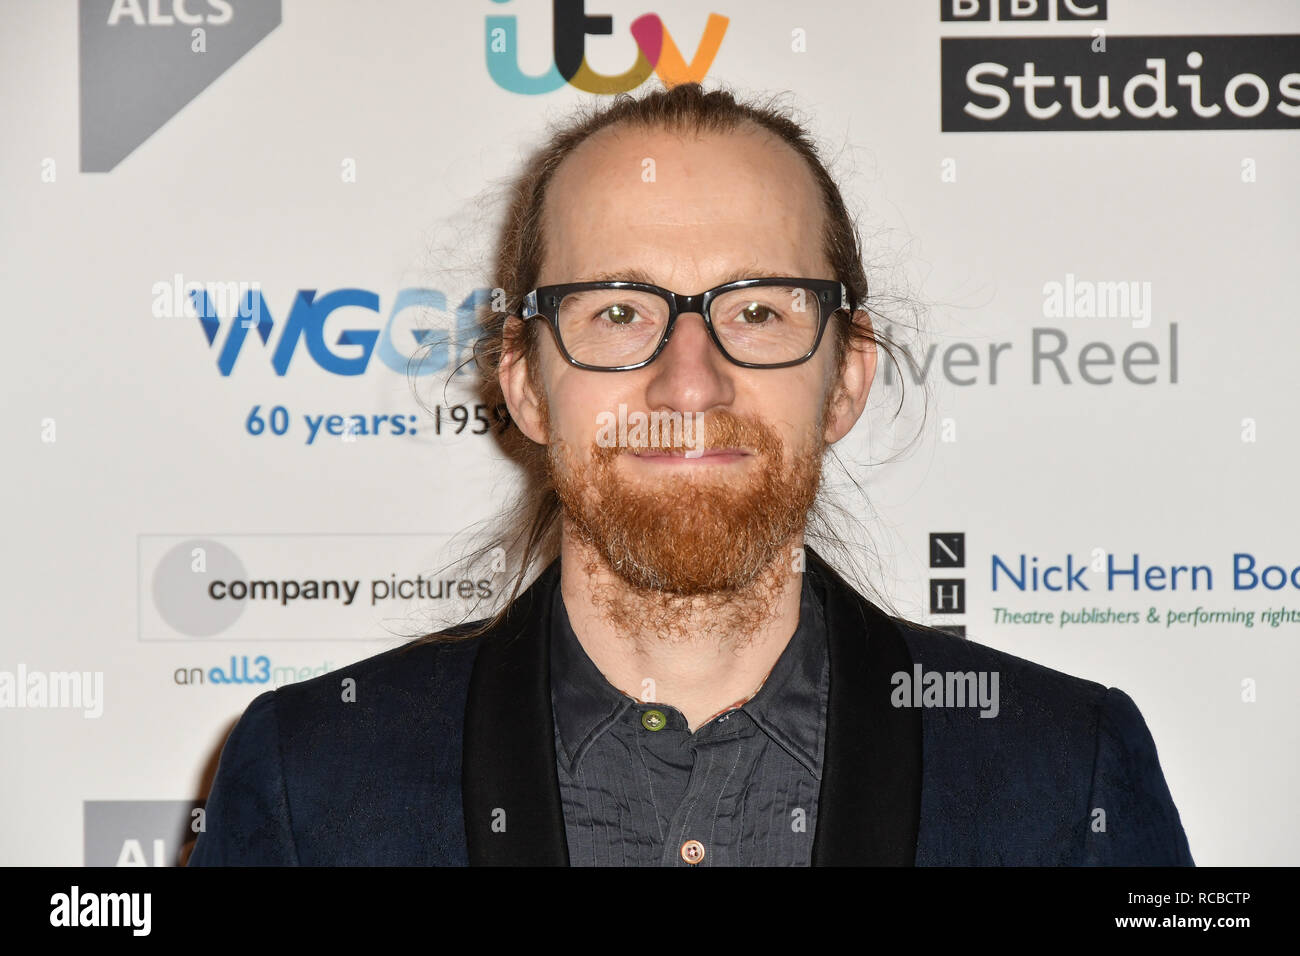 London, UK. 14th Jan, 2019. Sam Kenyon attends 2019 Writers' Guild Awards at Royal College of Physicians on 14 January 2019, London, UK Credit: Picture Capital/Alamy Live News - Stock Image